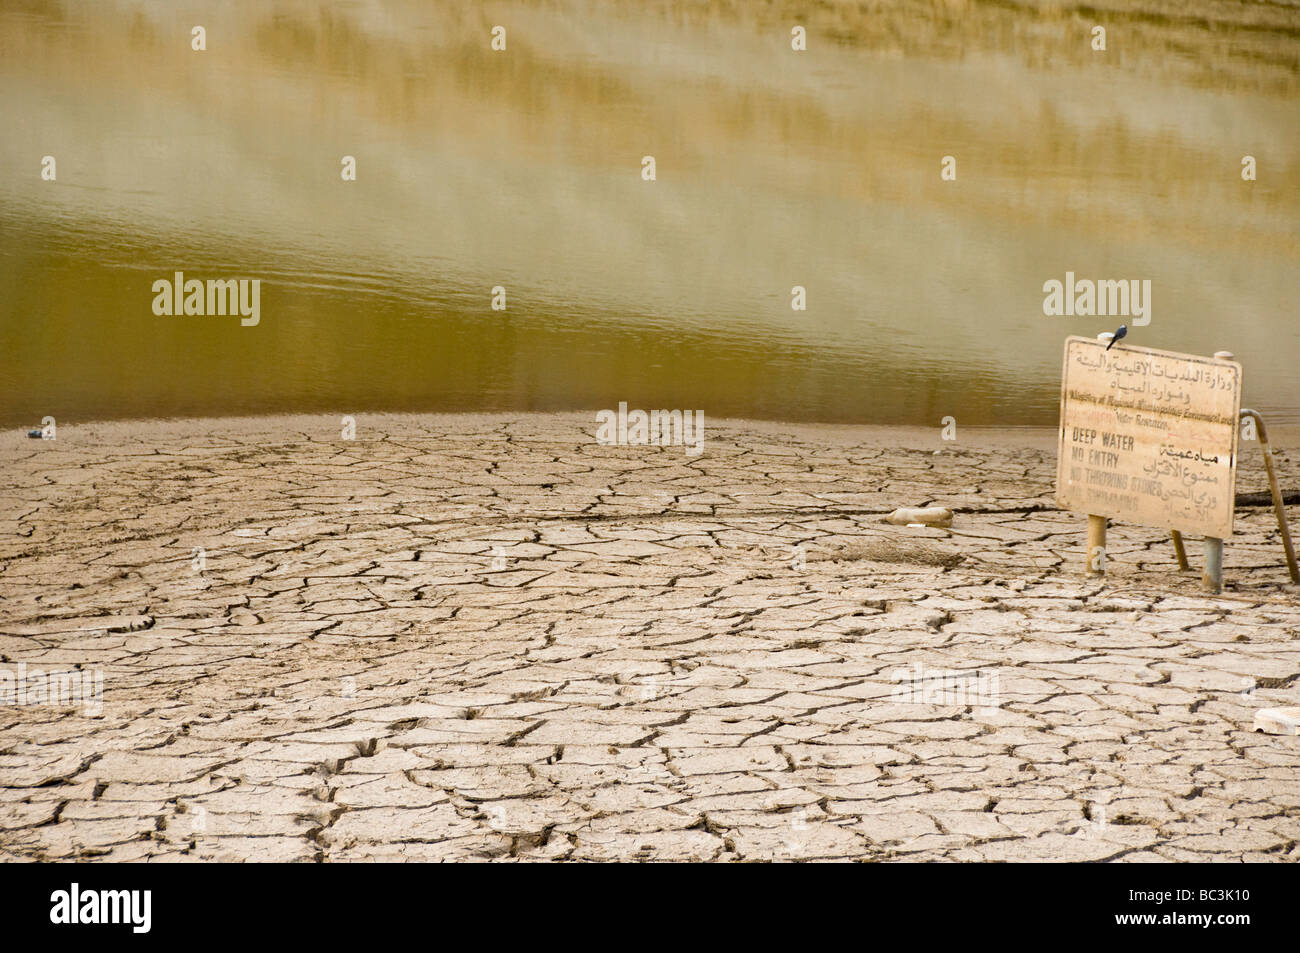 Dried out Wadi in Oman - Stock Image